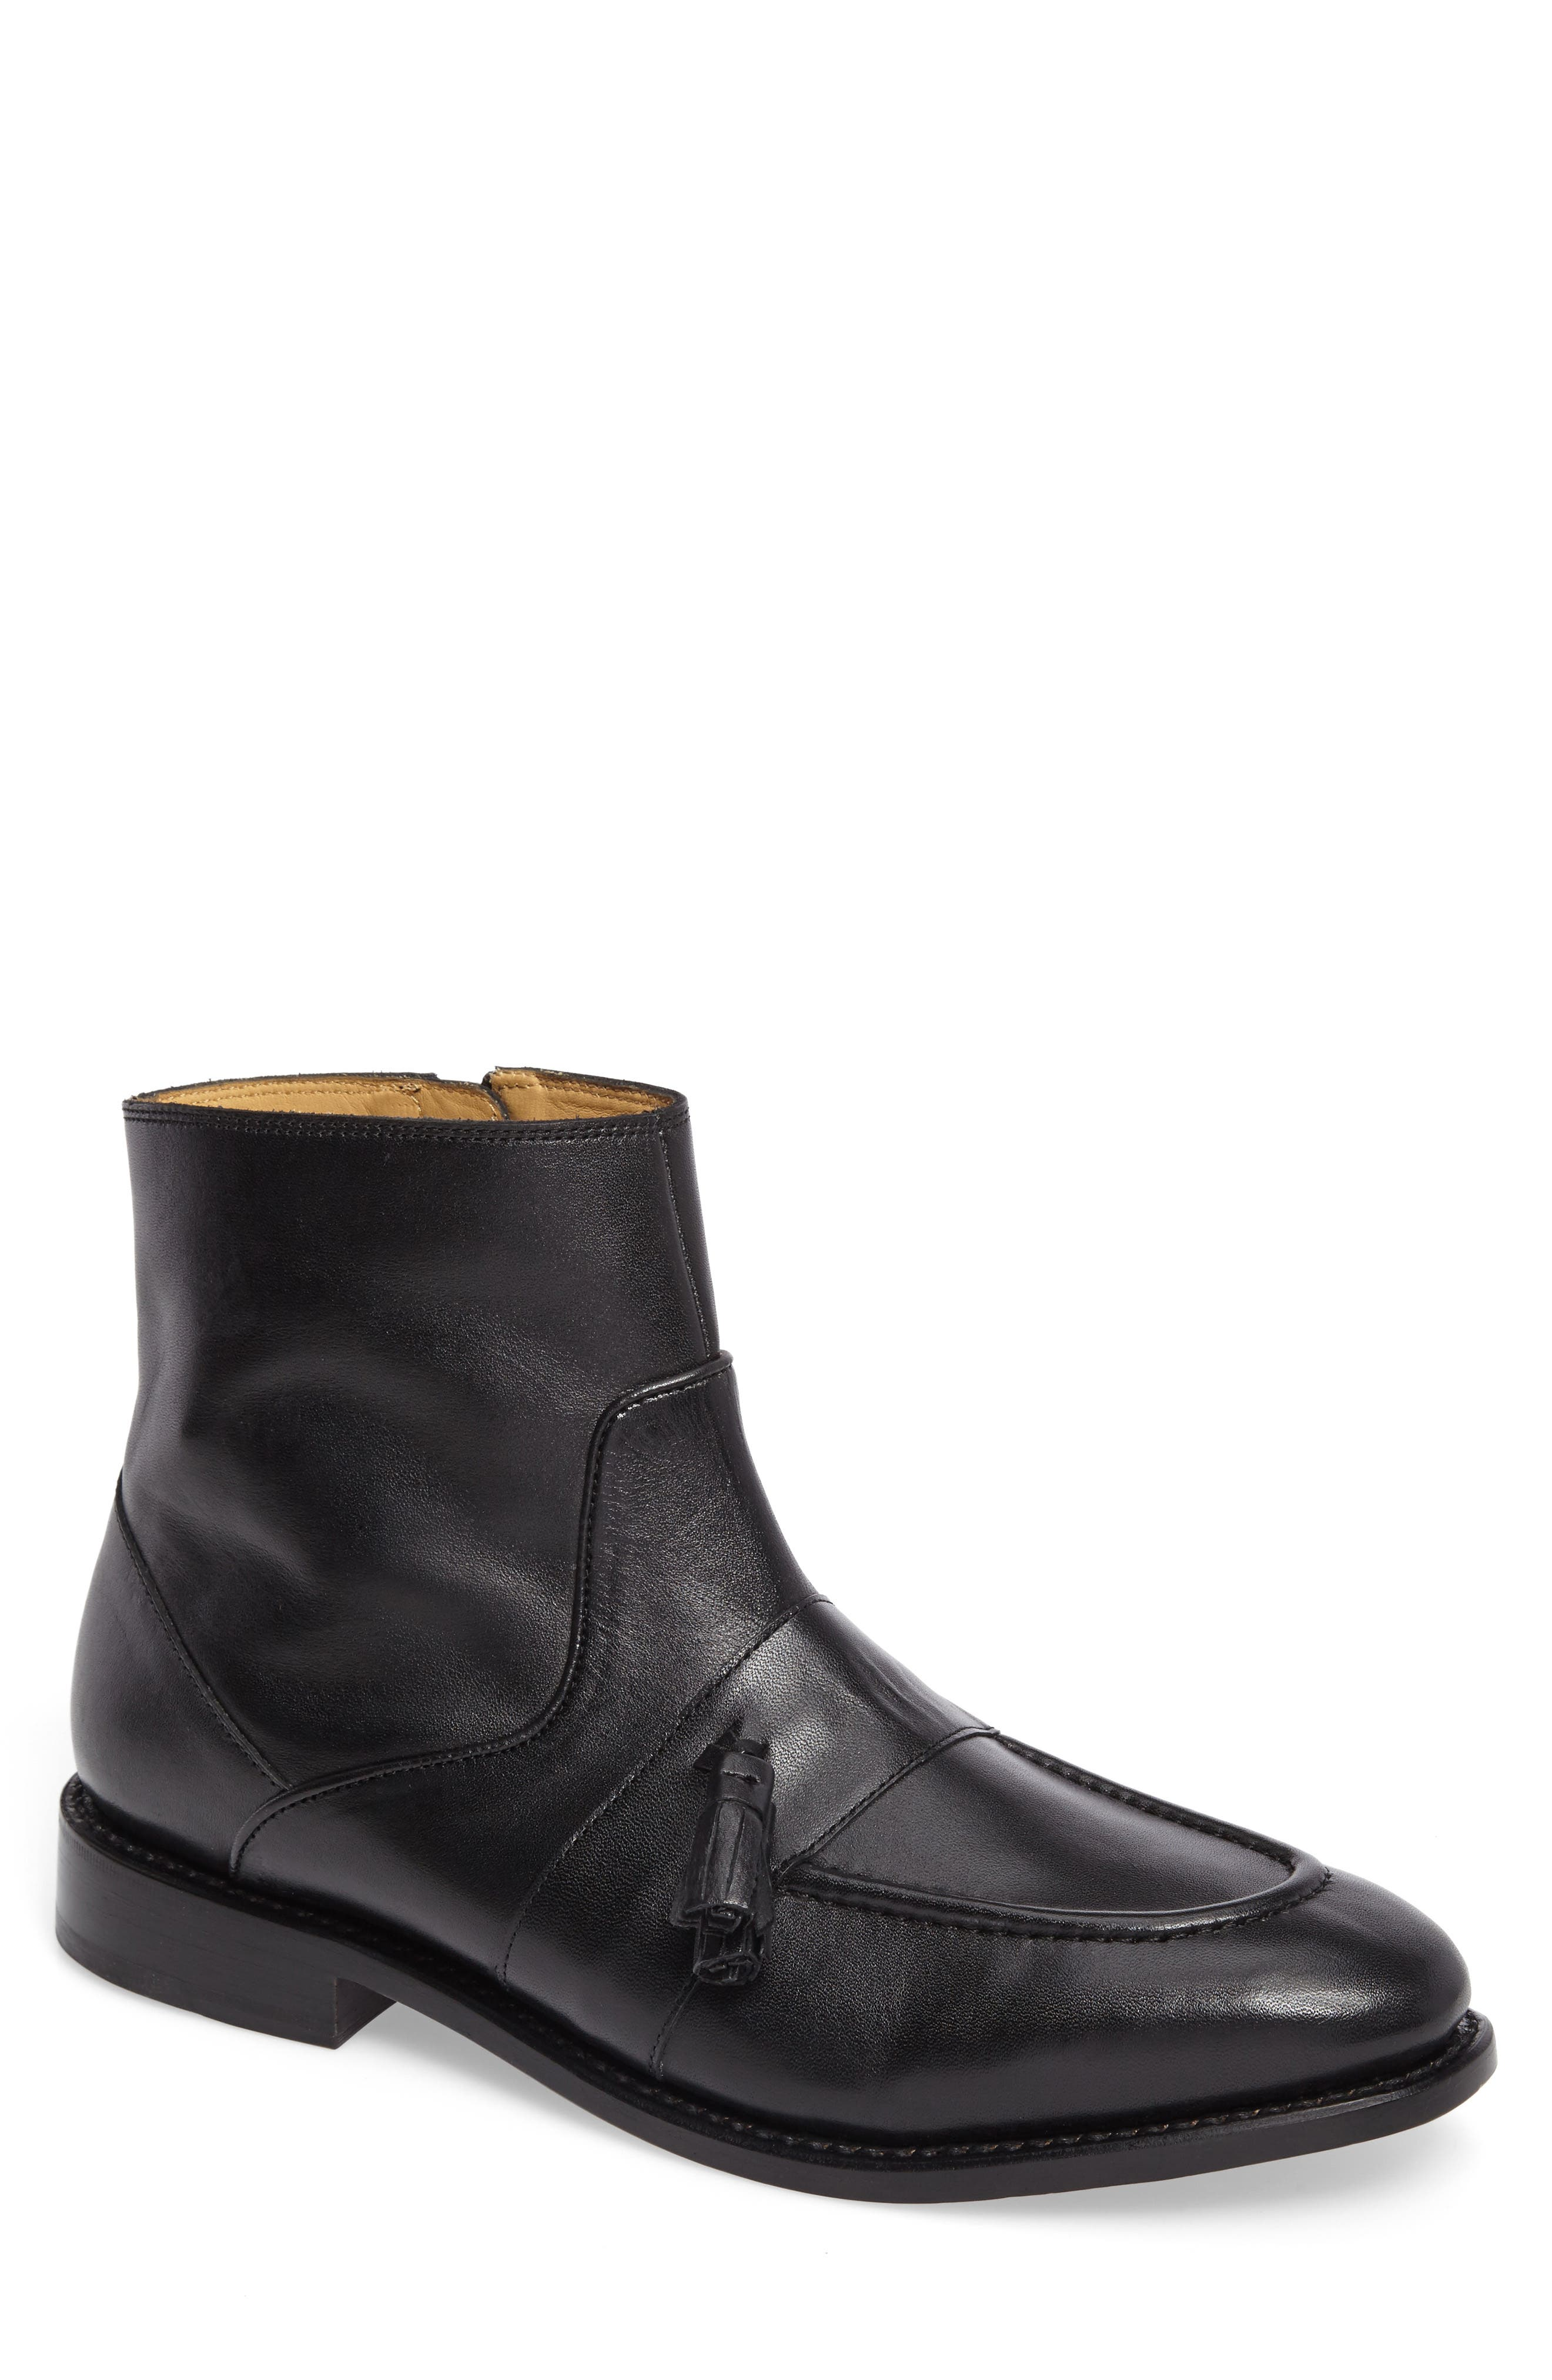 MICHAEL BASTIAN Sidney Zip Boot, Main, color, 011